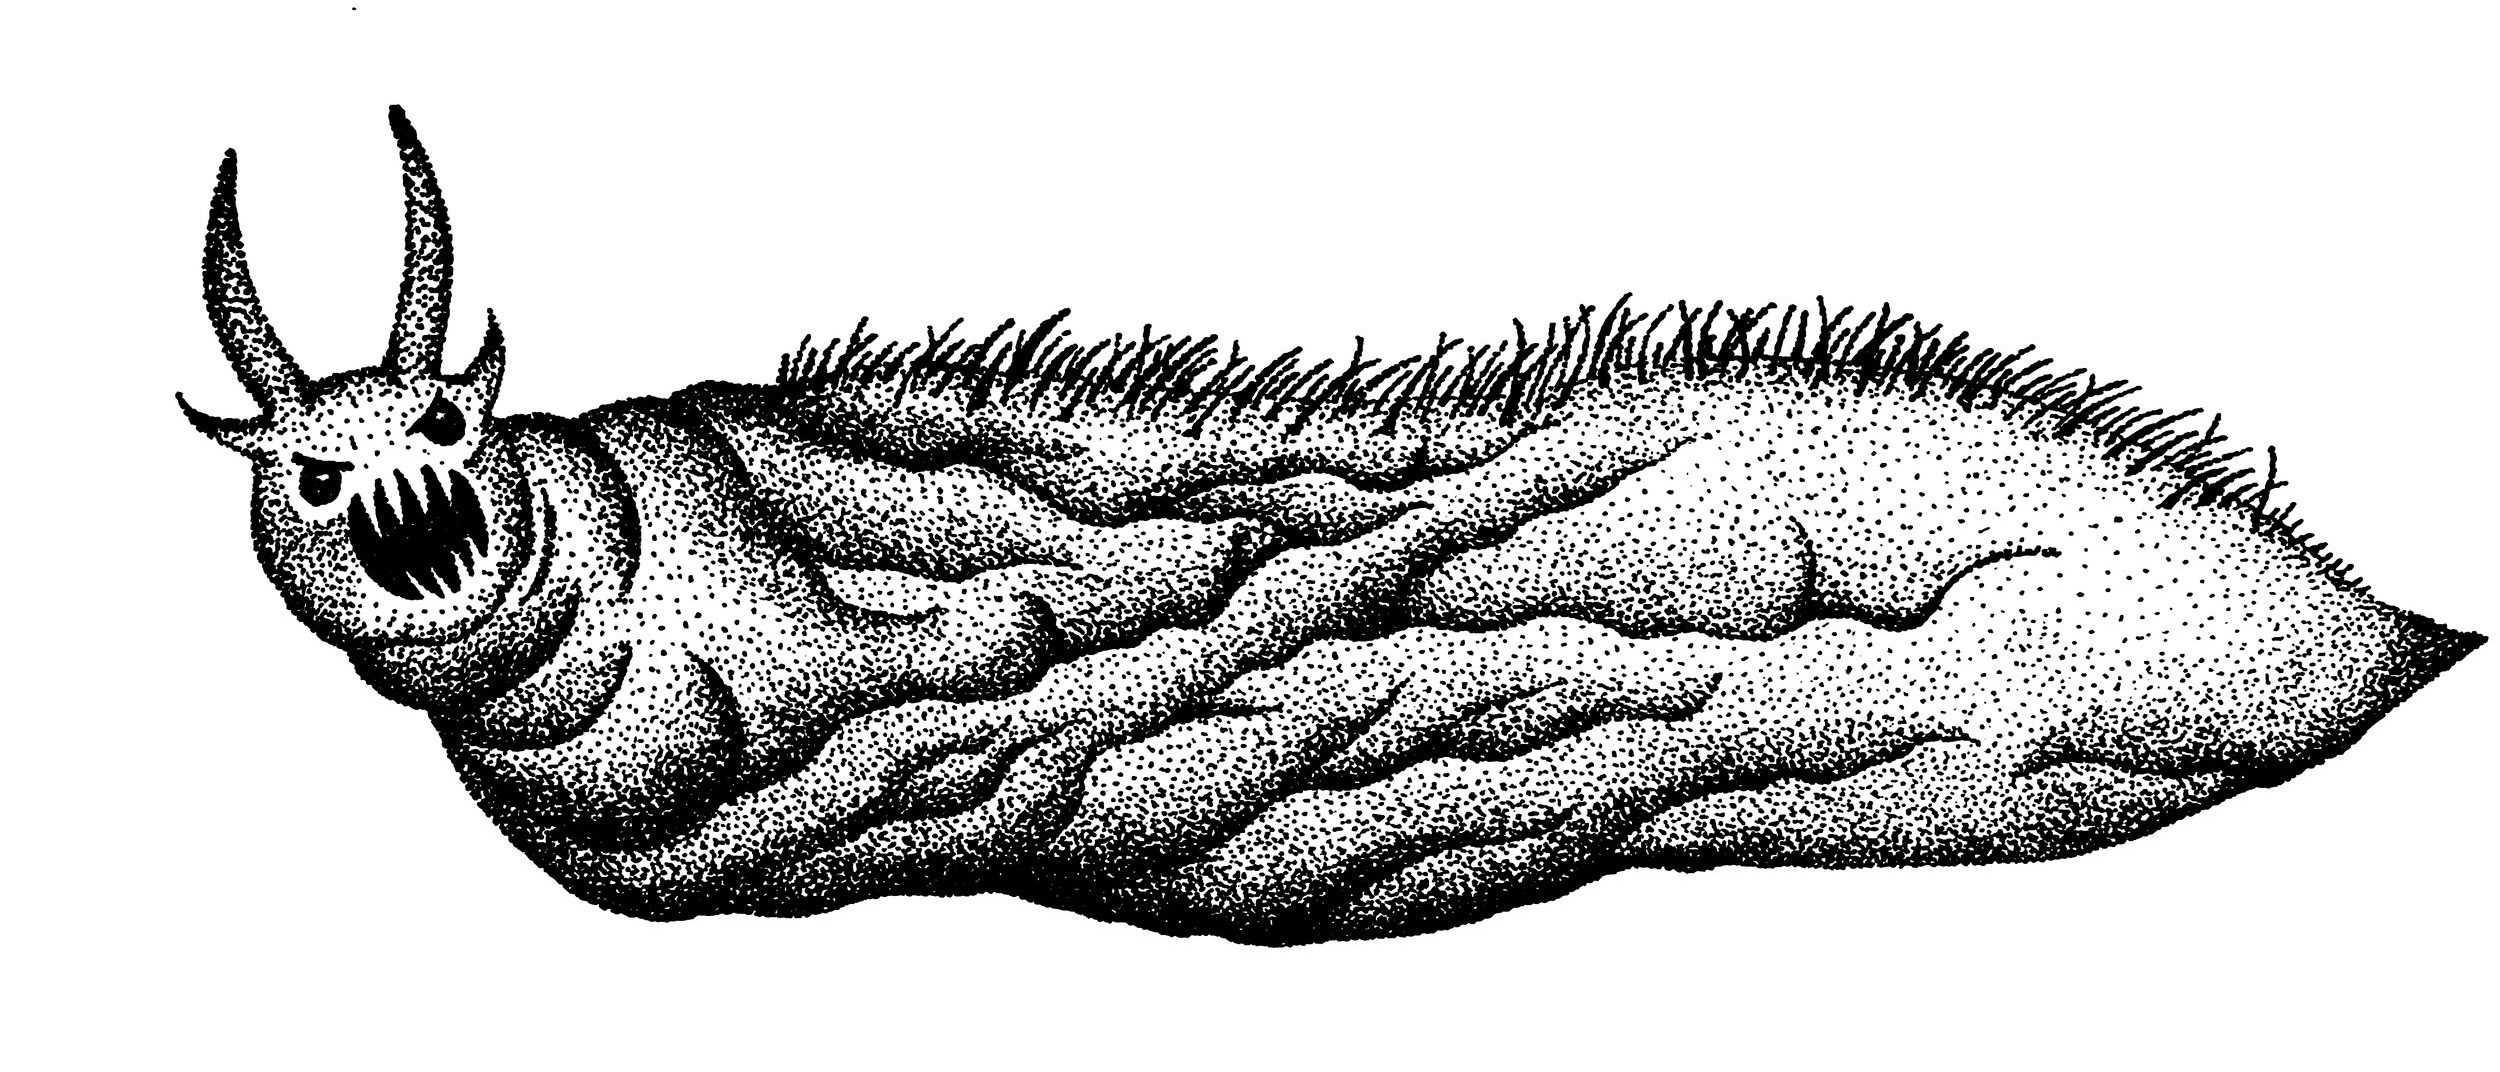 This is the stippled drawing of the same monster, slug-like, with quills on the back and big teeth.